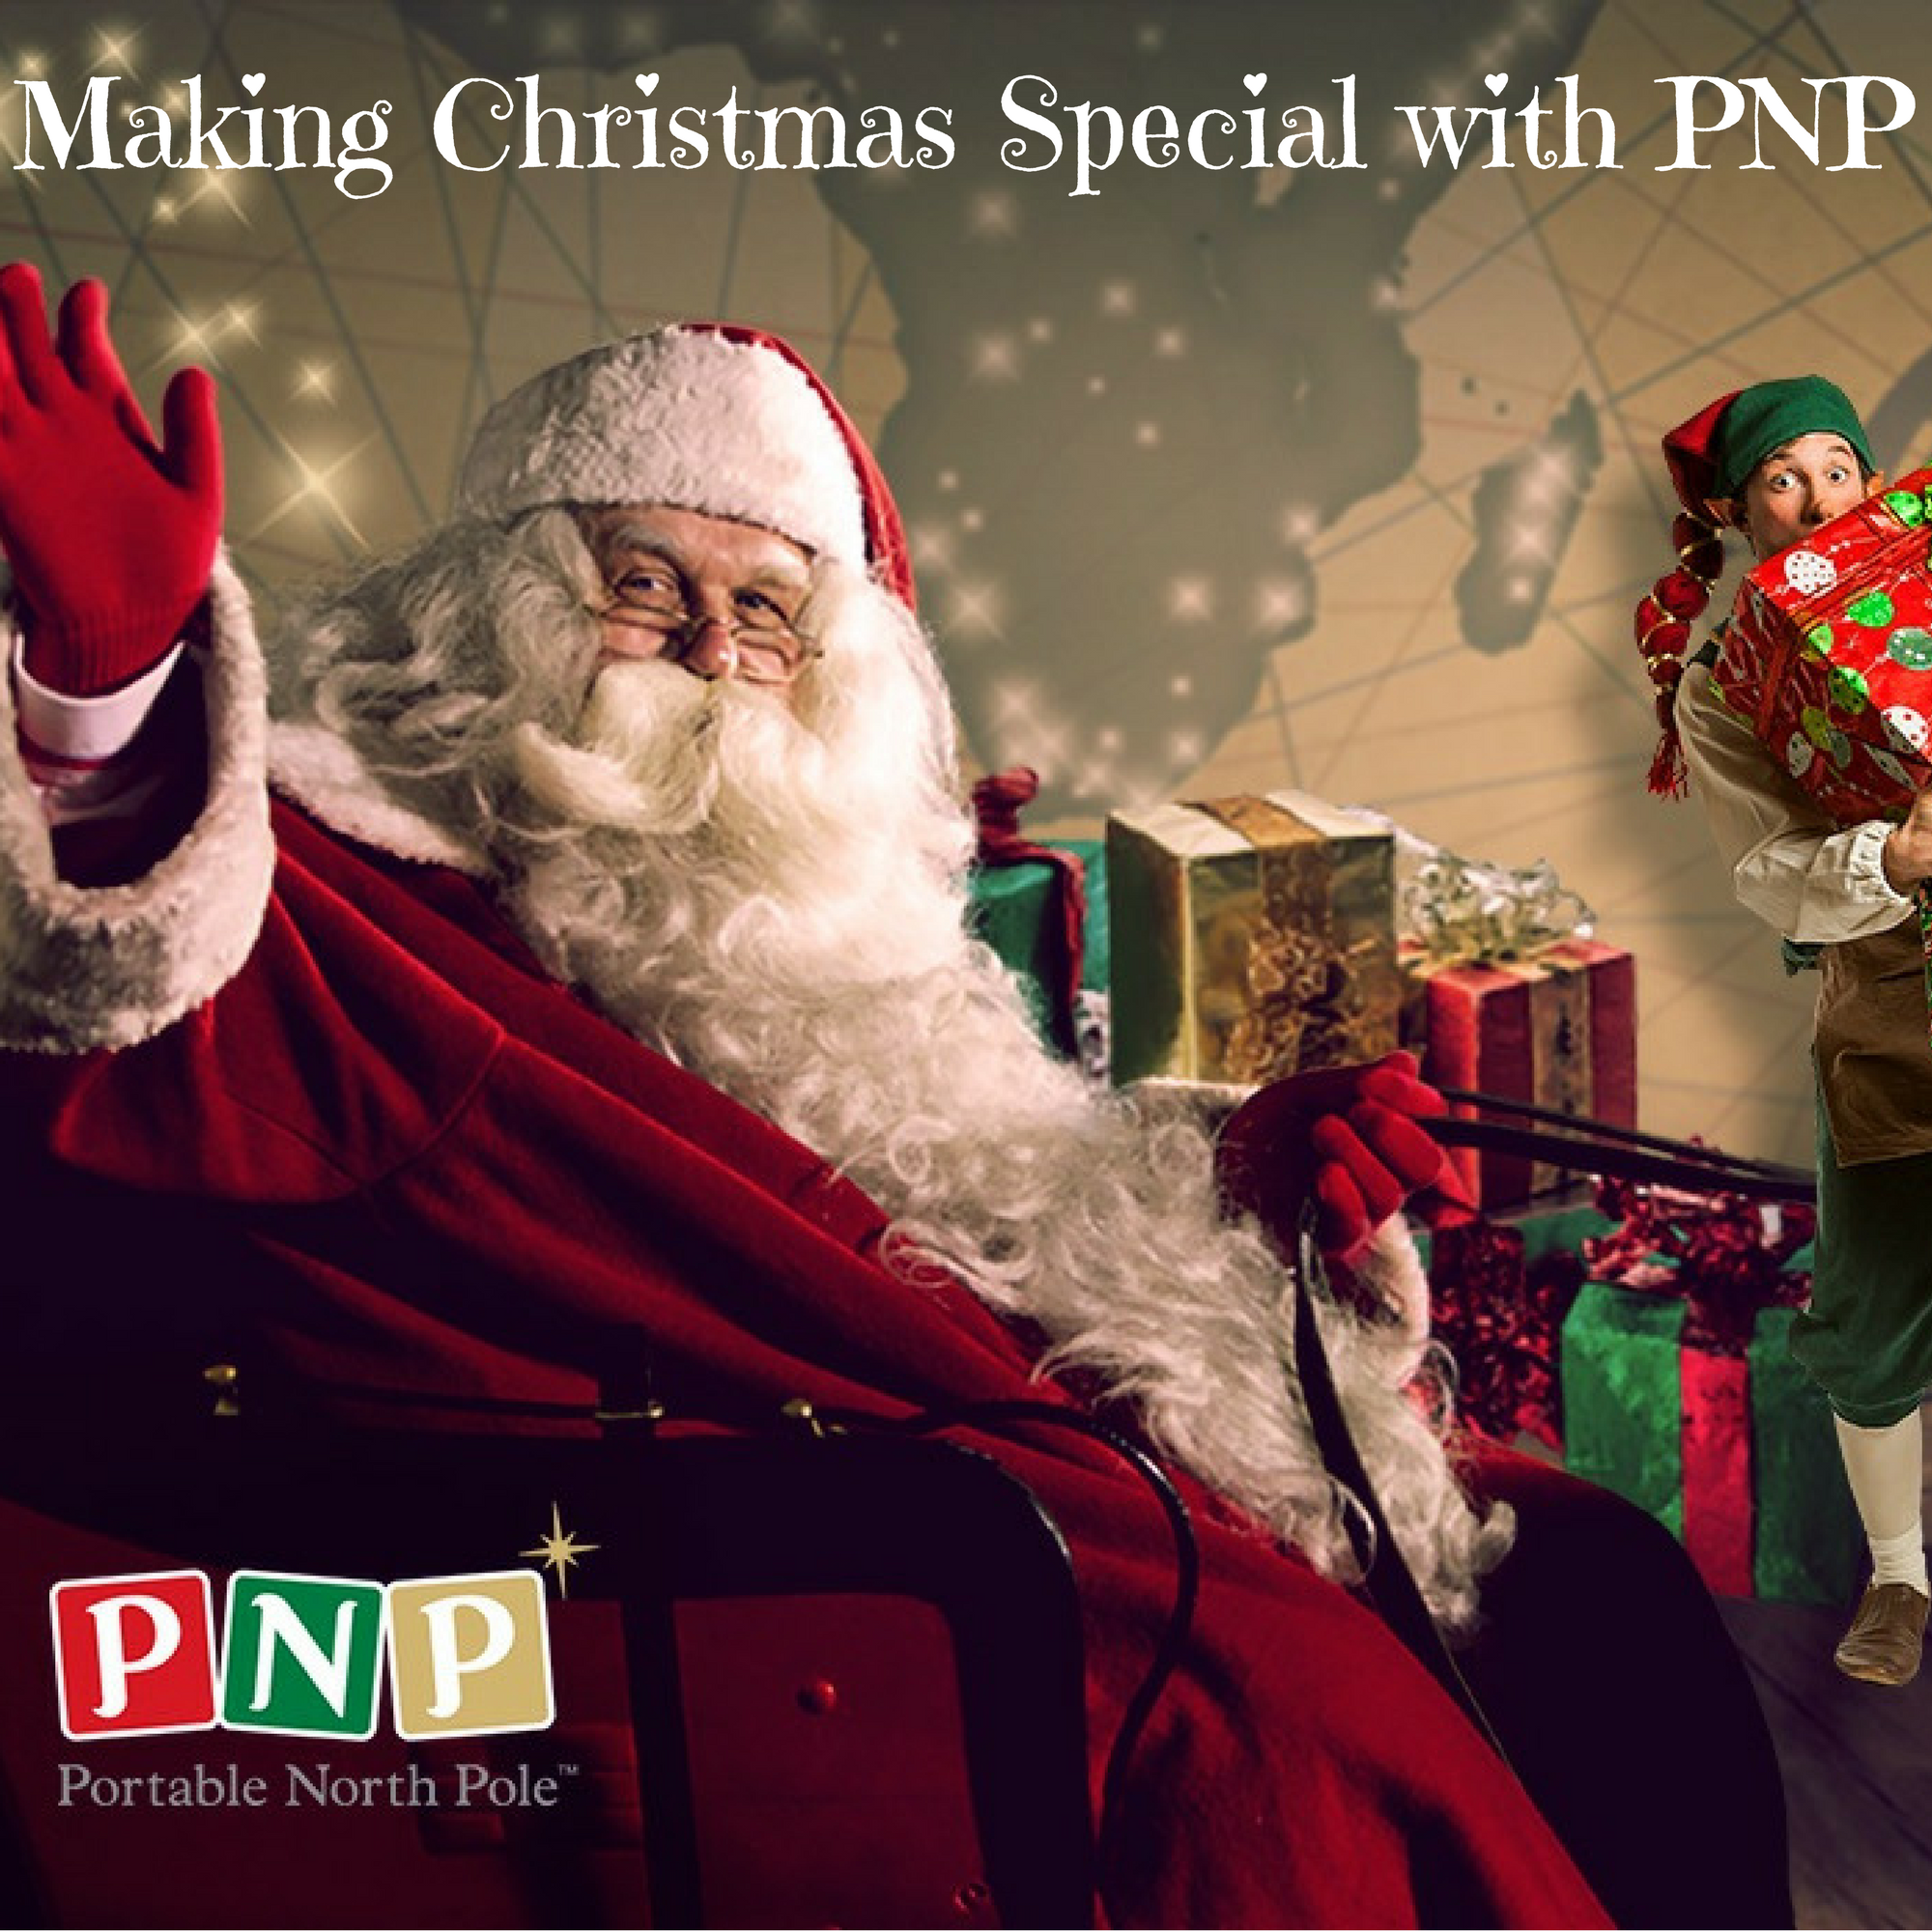 Making Christmas Special with PNP